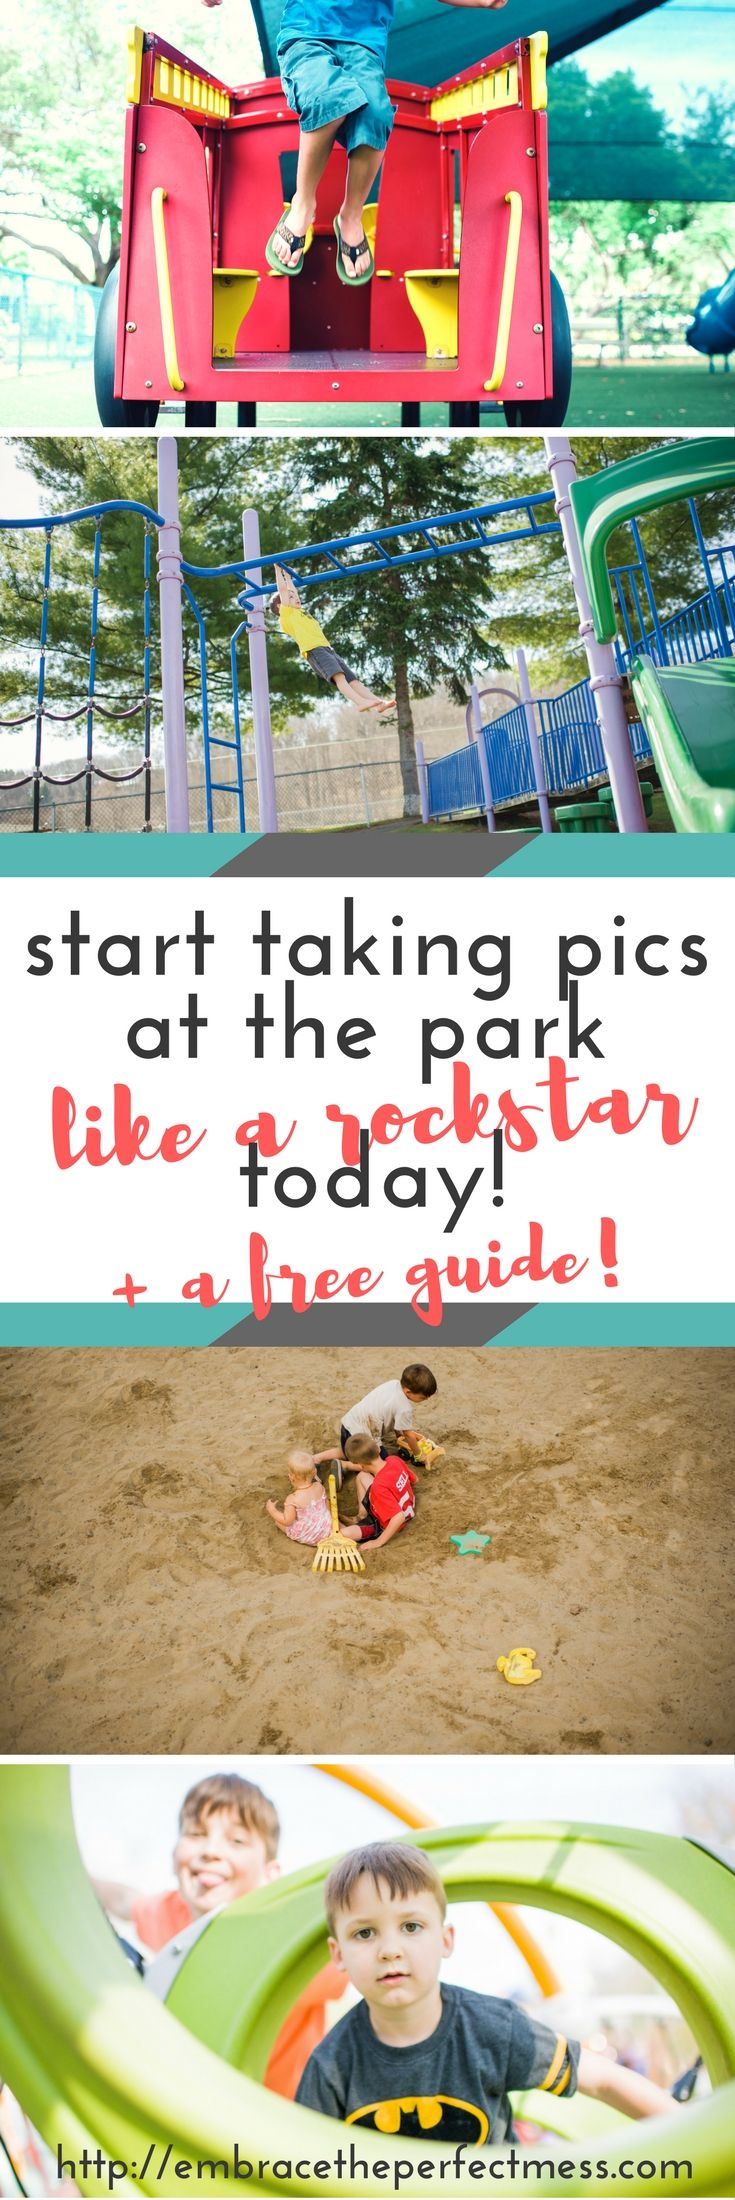 Great photo tips for moms | tips for taking pictures of kids | How to take better pictures of your kids at the playground